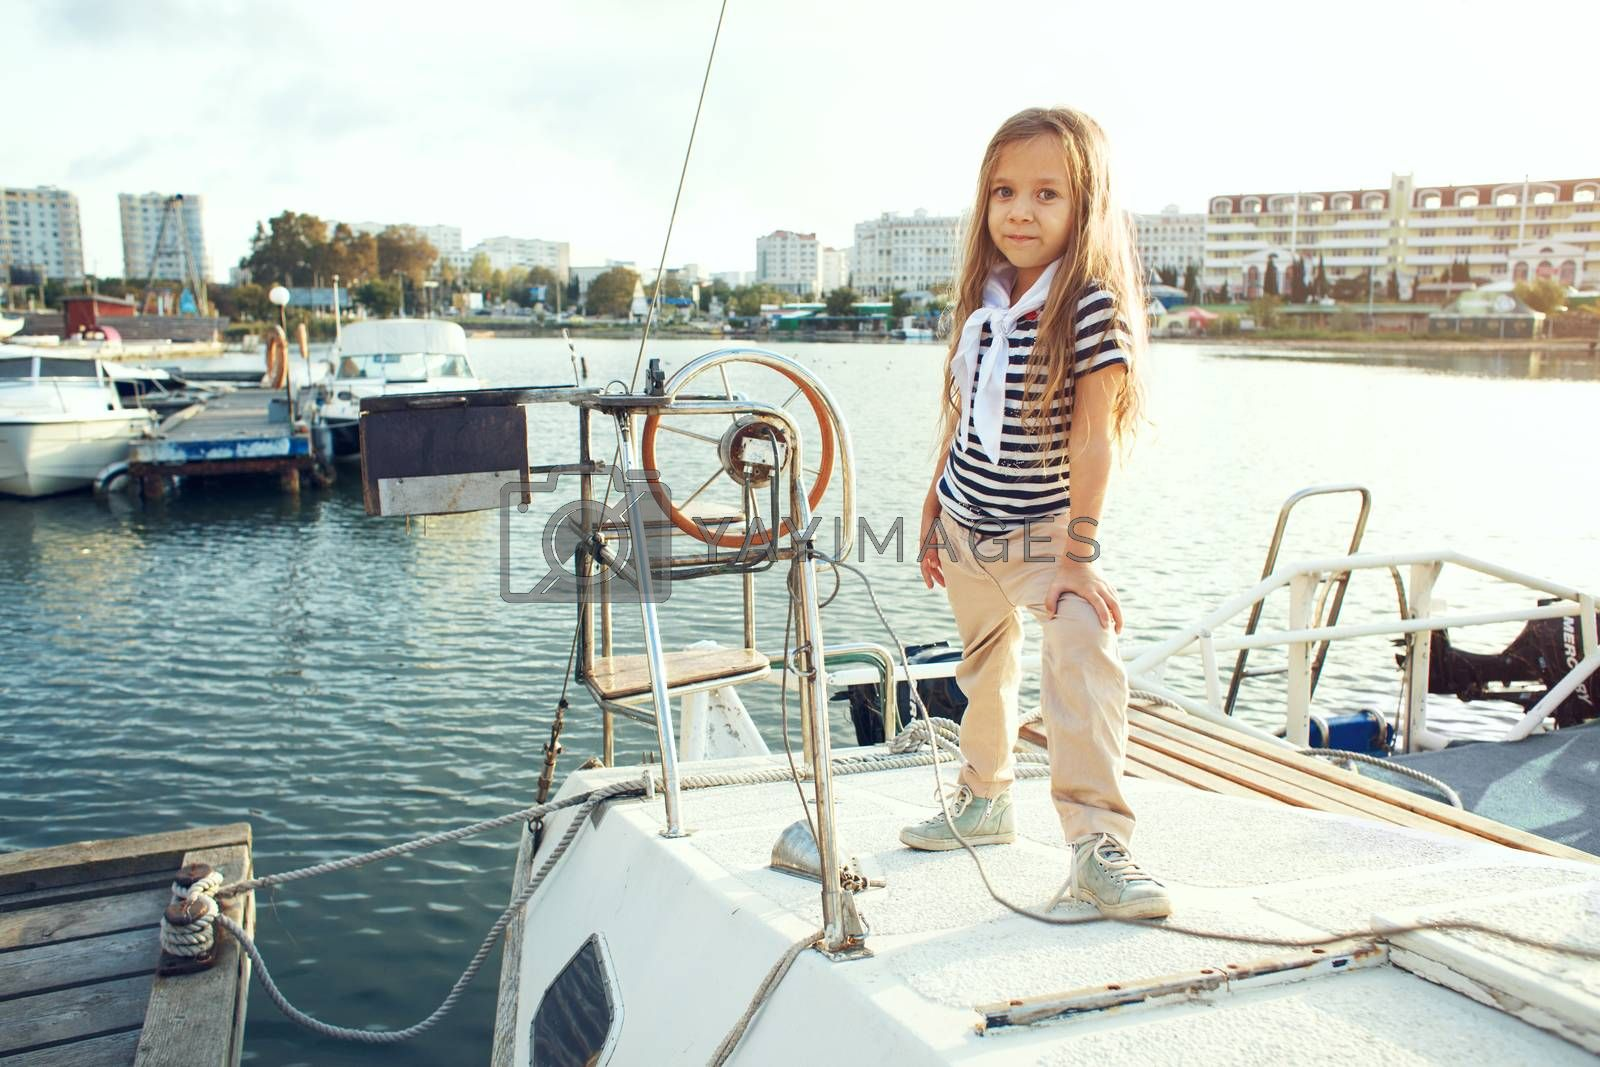 Fashion child wearing navy clothes in marine style posing on white yacht in sea port